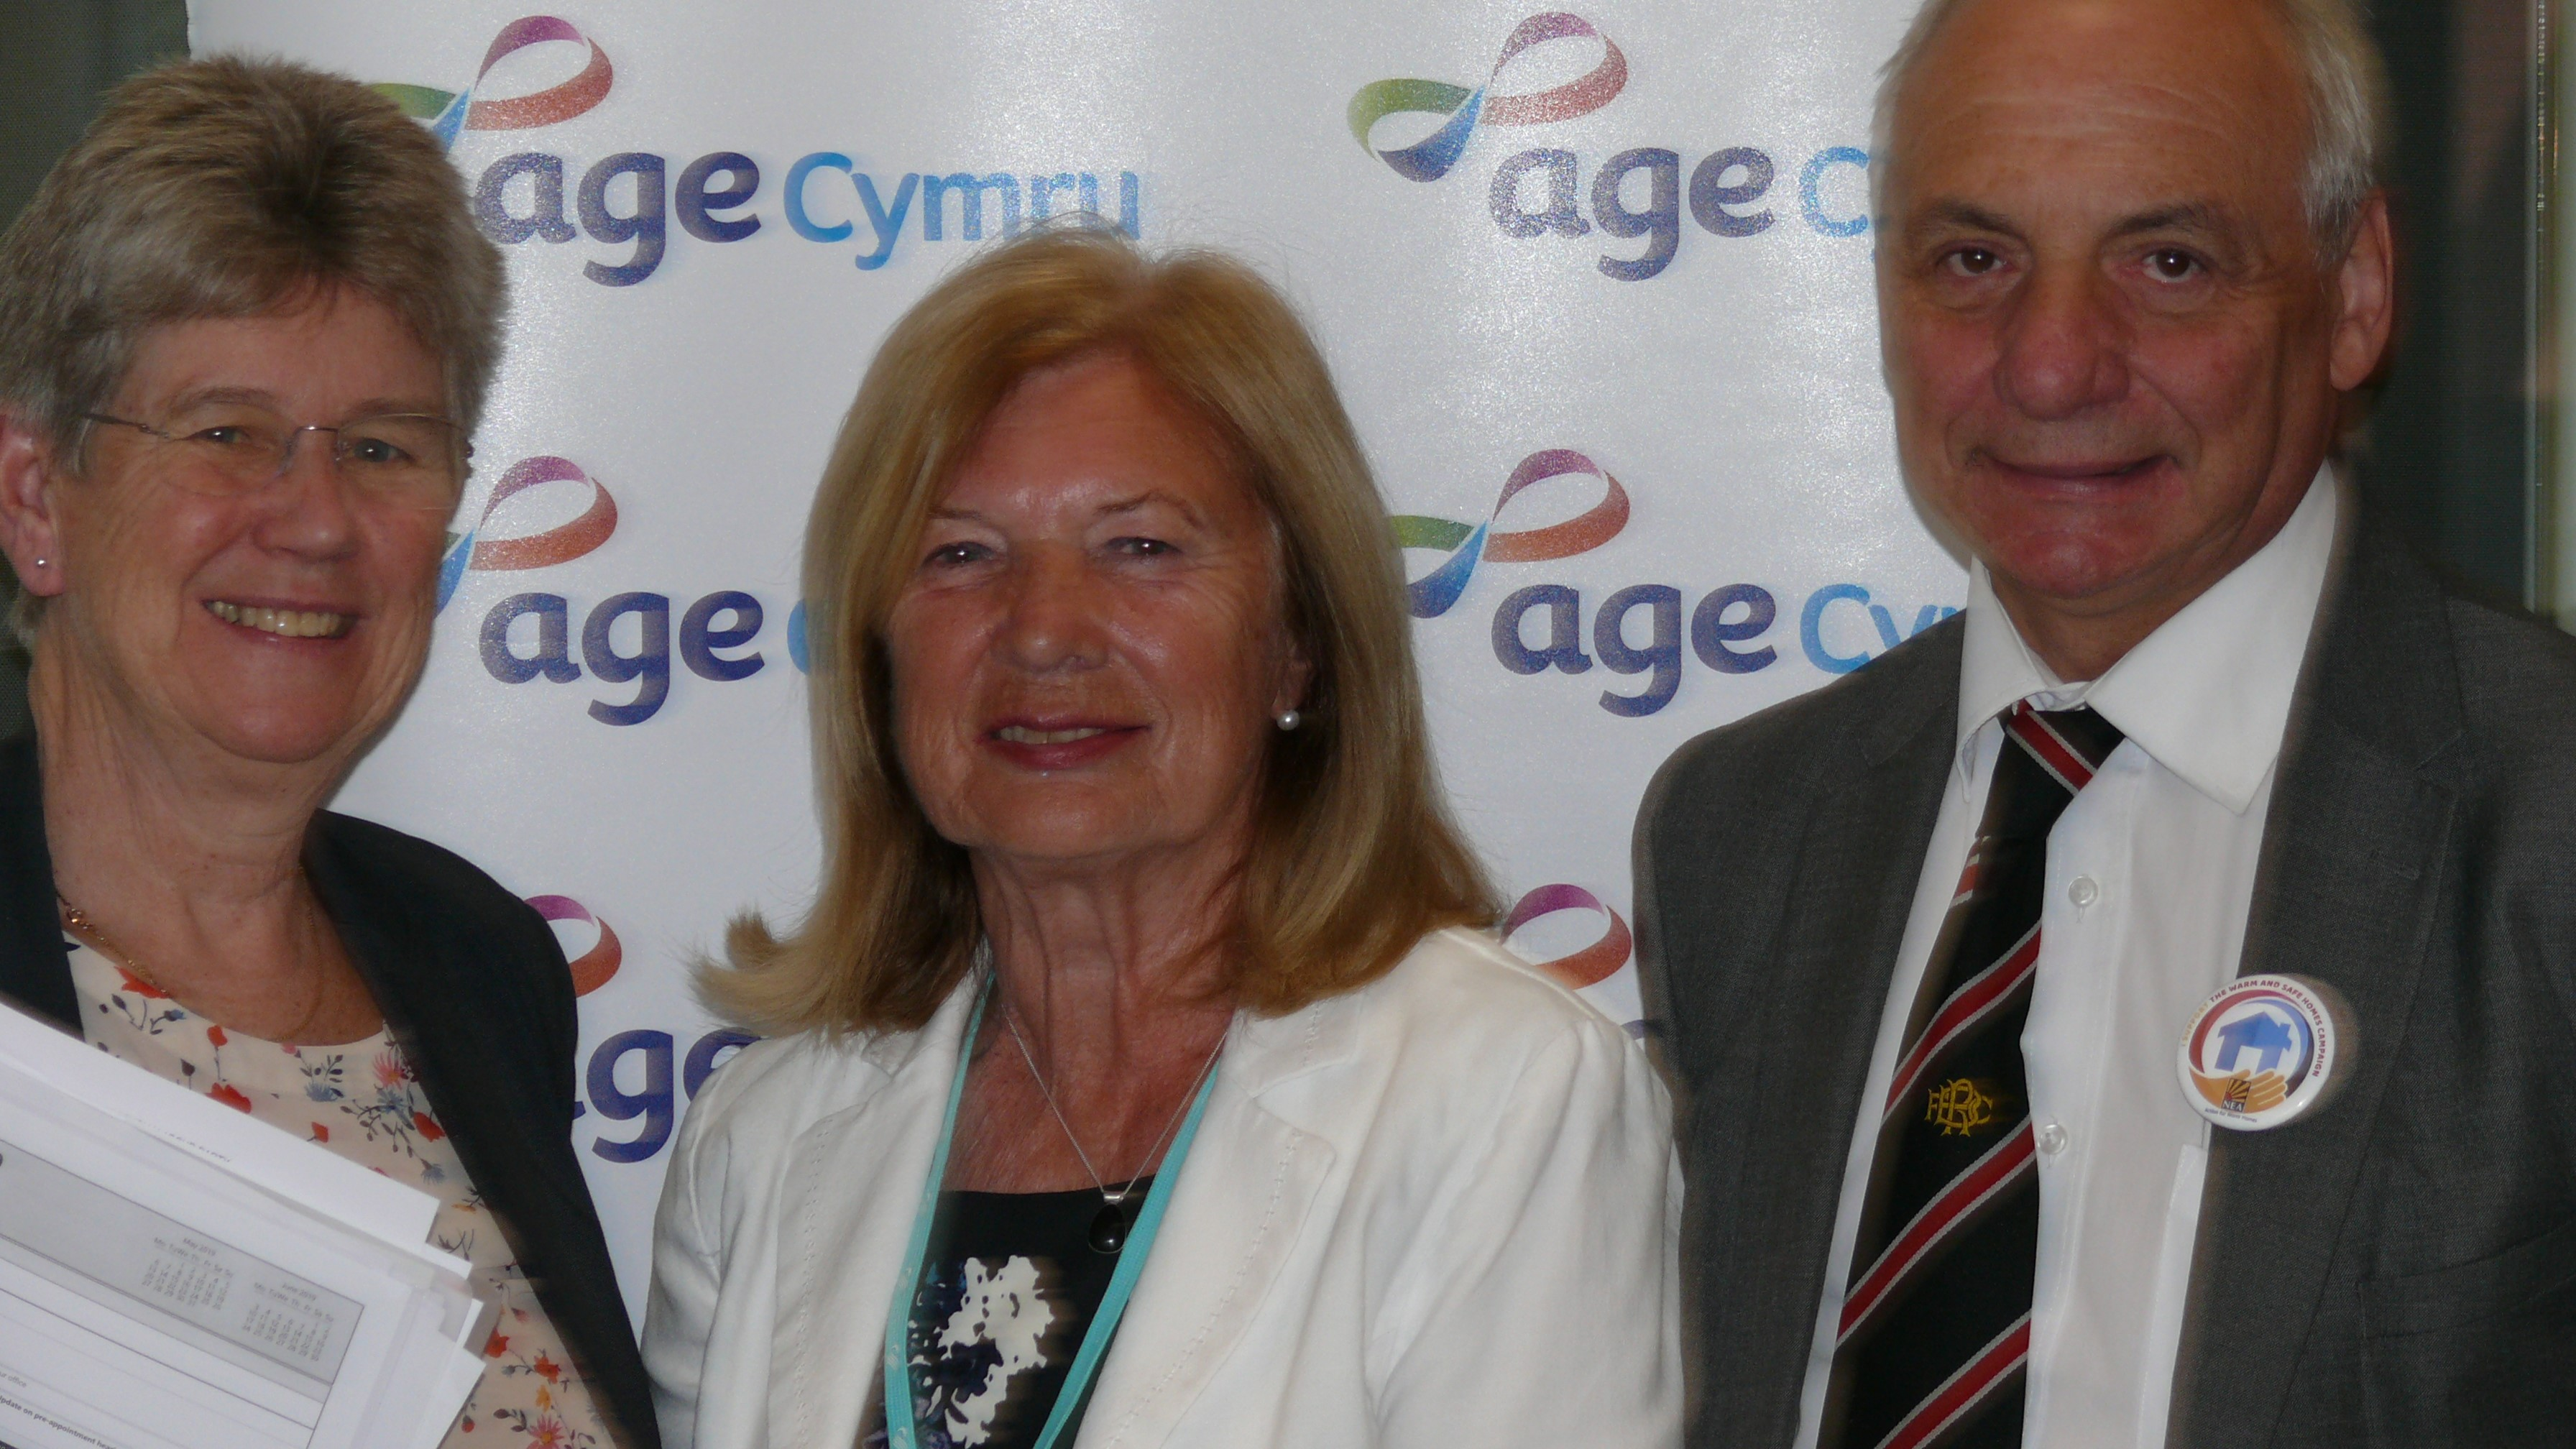 Deputy Minister and Chief Whip Jane Hutt AM, Dr Bernadette Fuge OBE President of Age Cymru, and Mike Hedges AM Chair of the Cross Party Group on Older People and Ageing